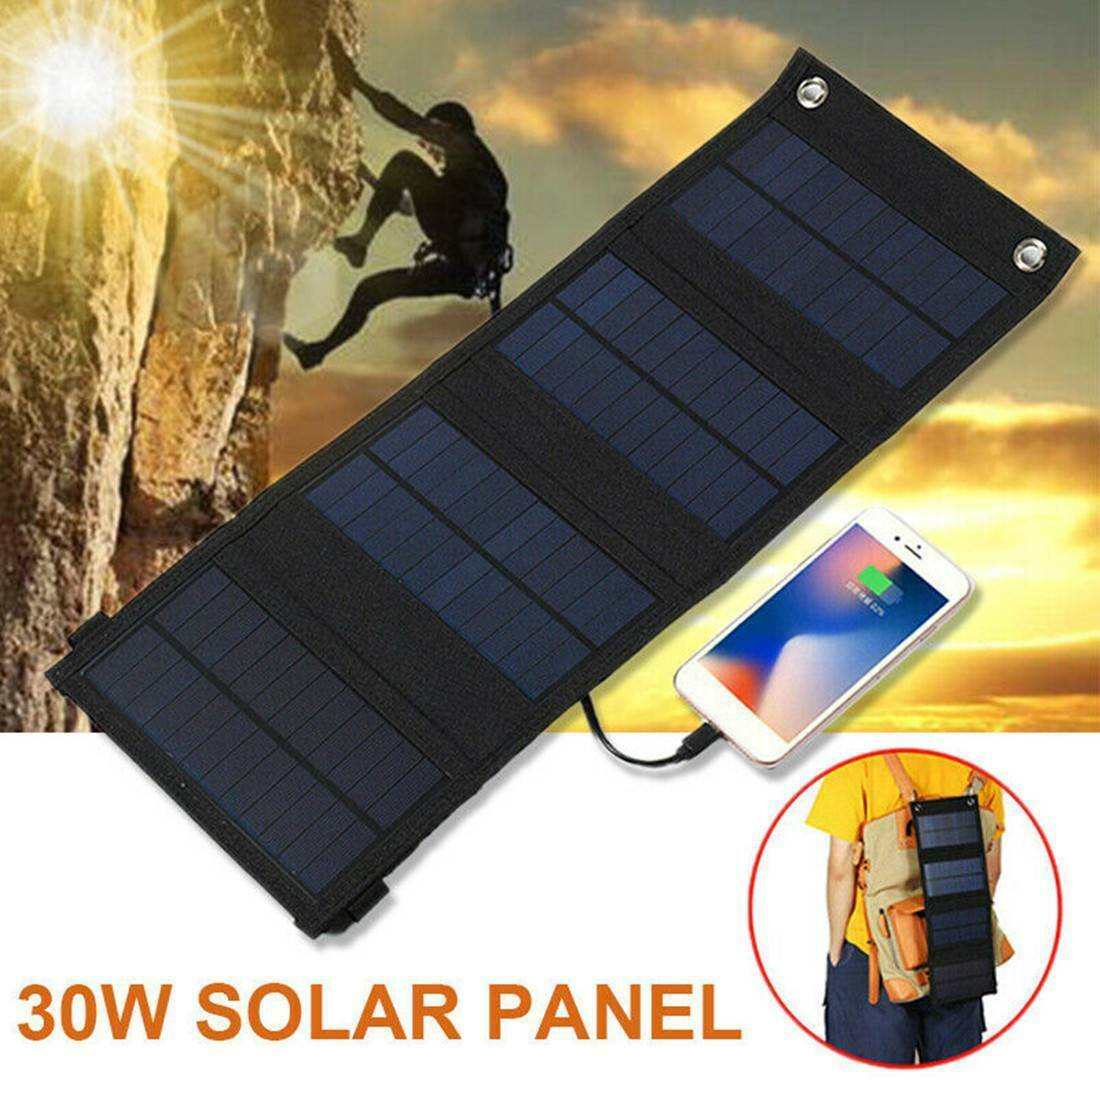 30W 5V 4 Folding Solar Panel USB Phone Battery Charger Backup Power Bank Outdoor